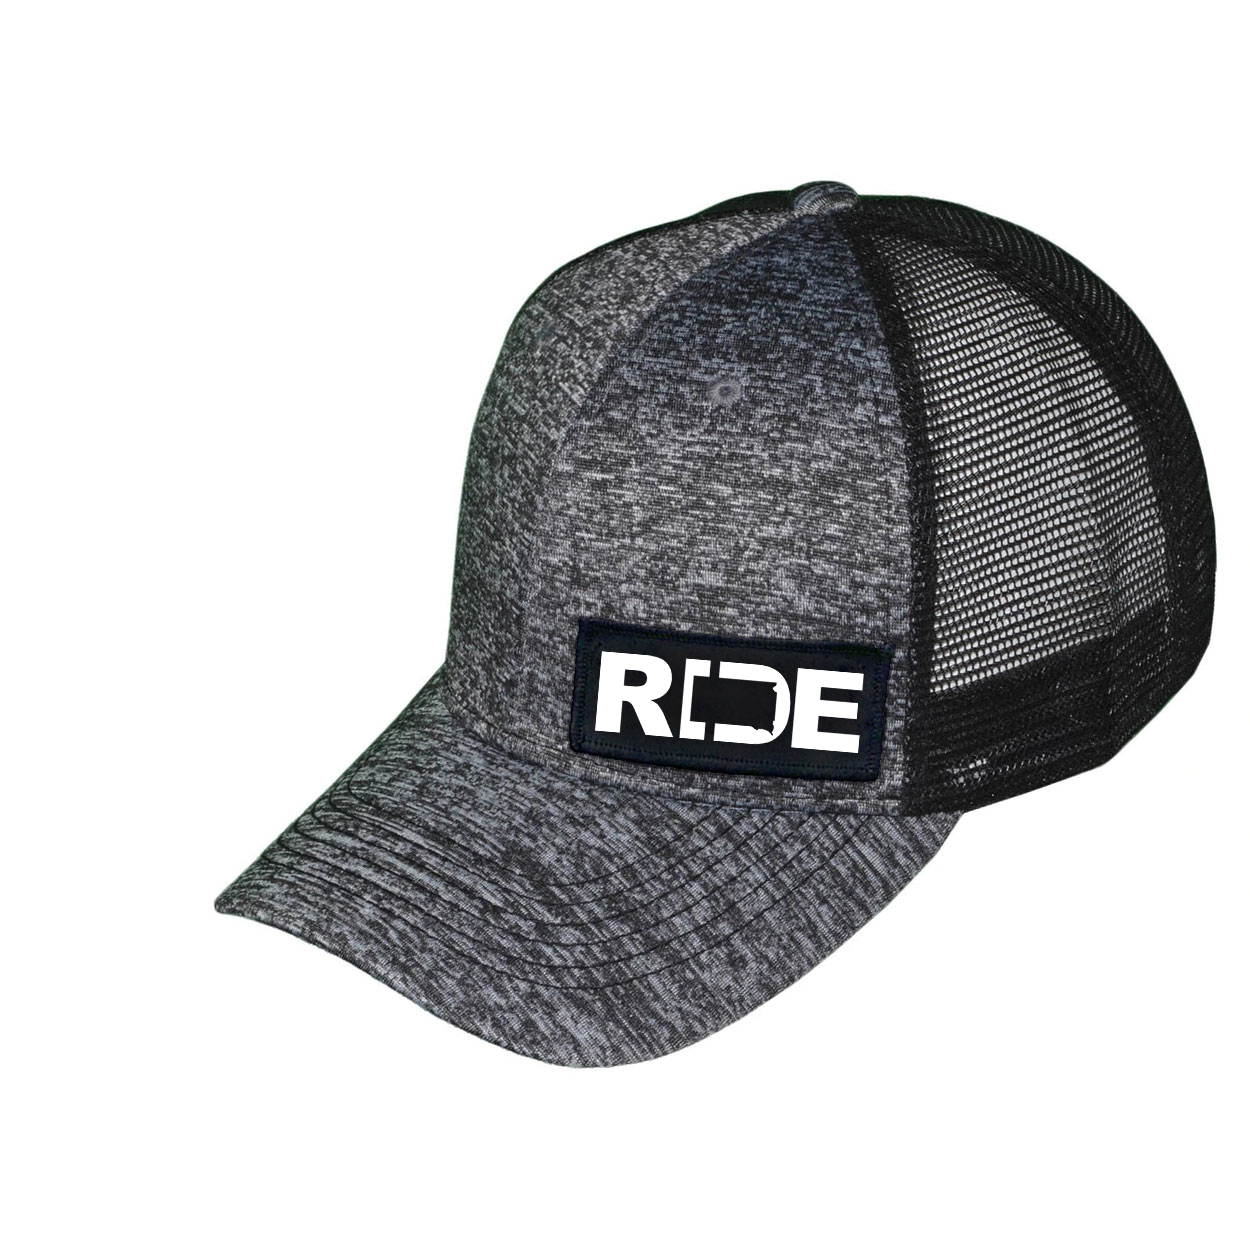 Ride South Dakota Night Out Woven Patch Melange Snapback Trucker Hat Gray/Black (White Logo)